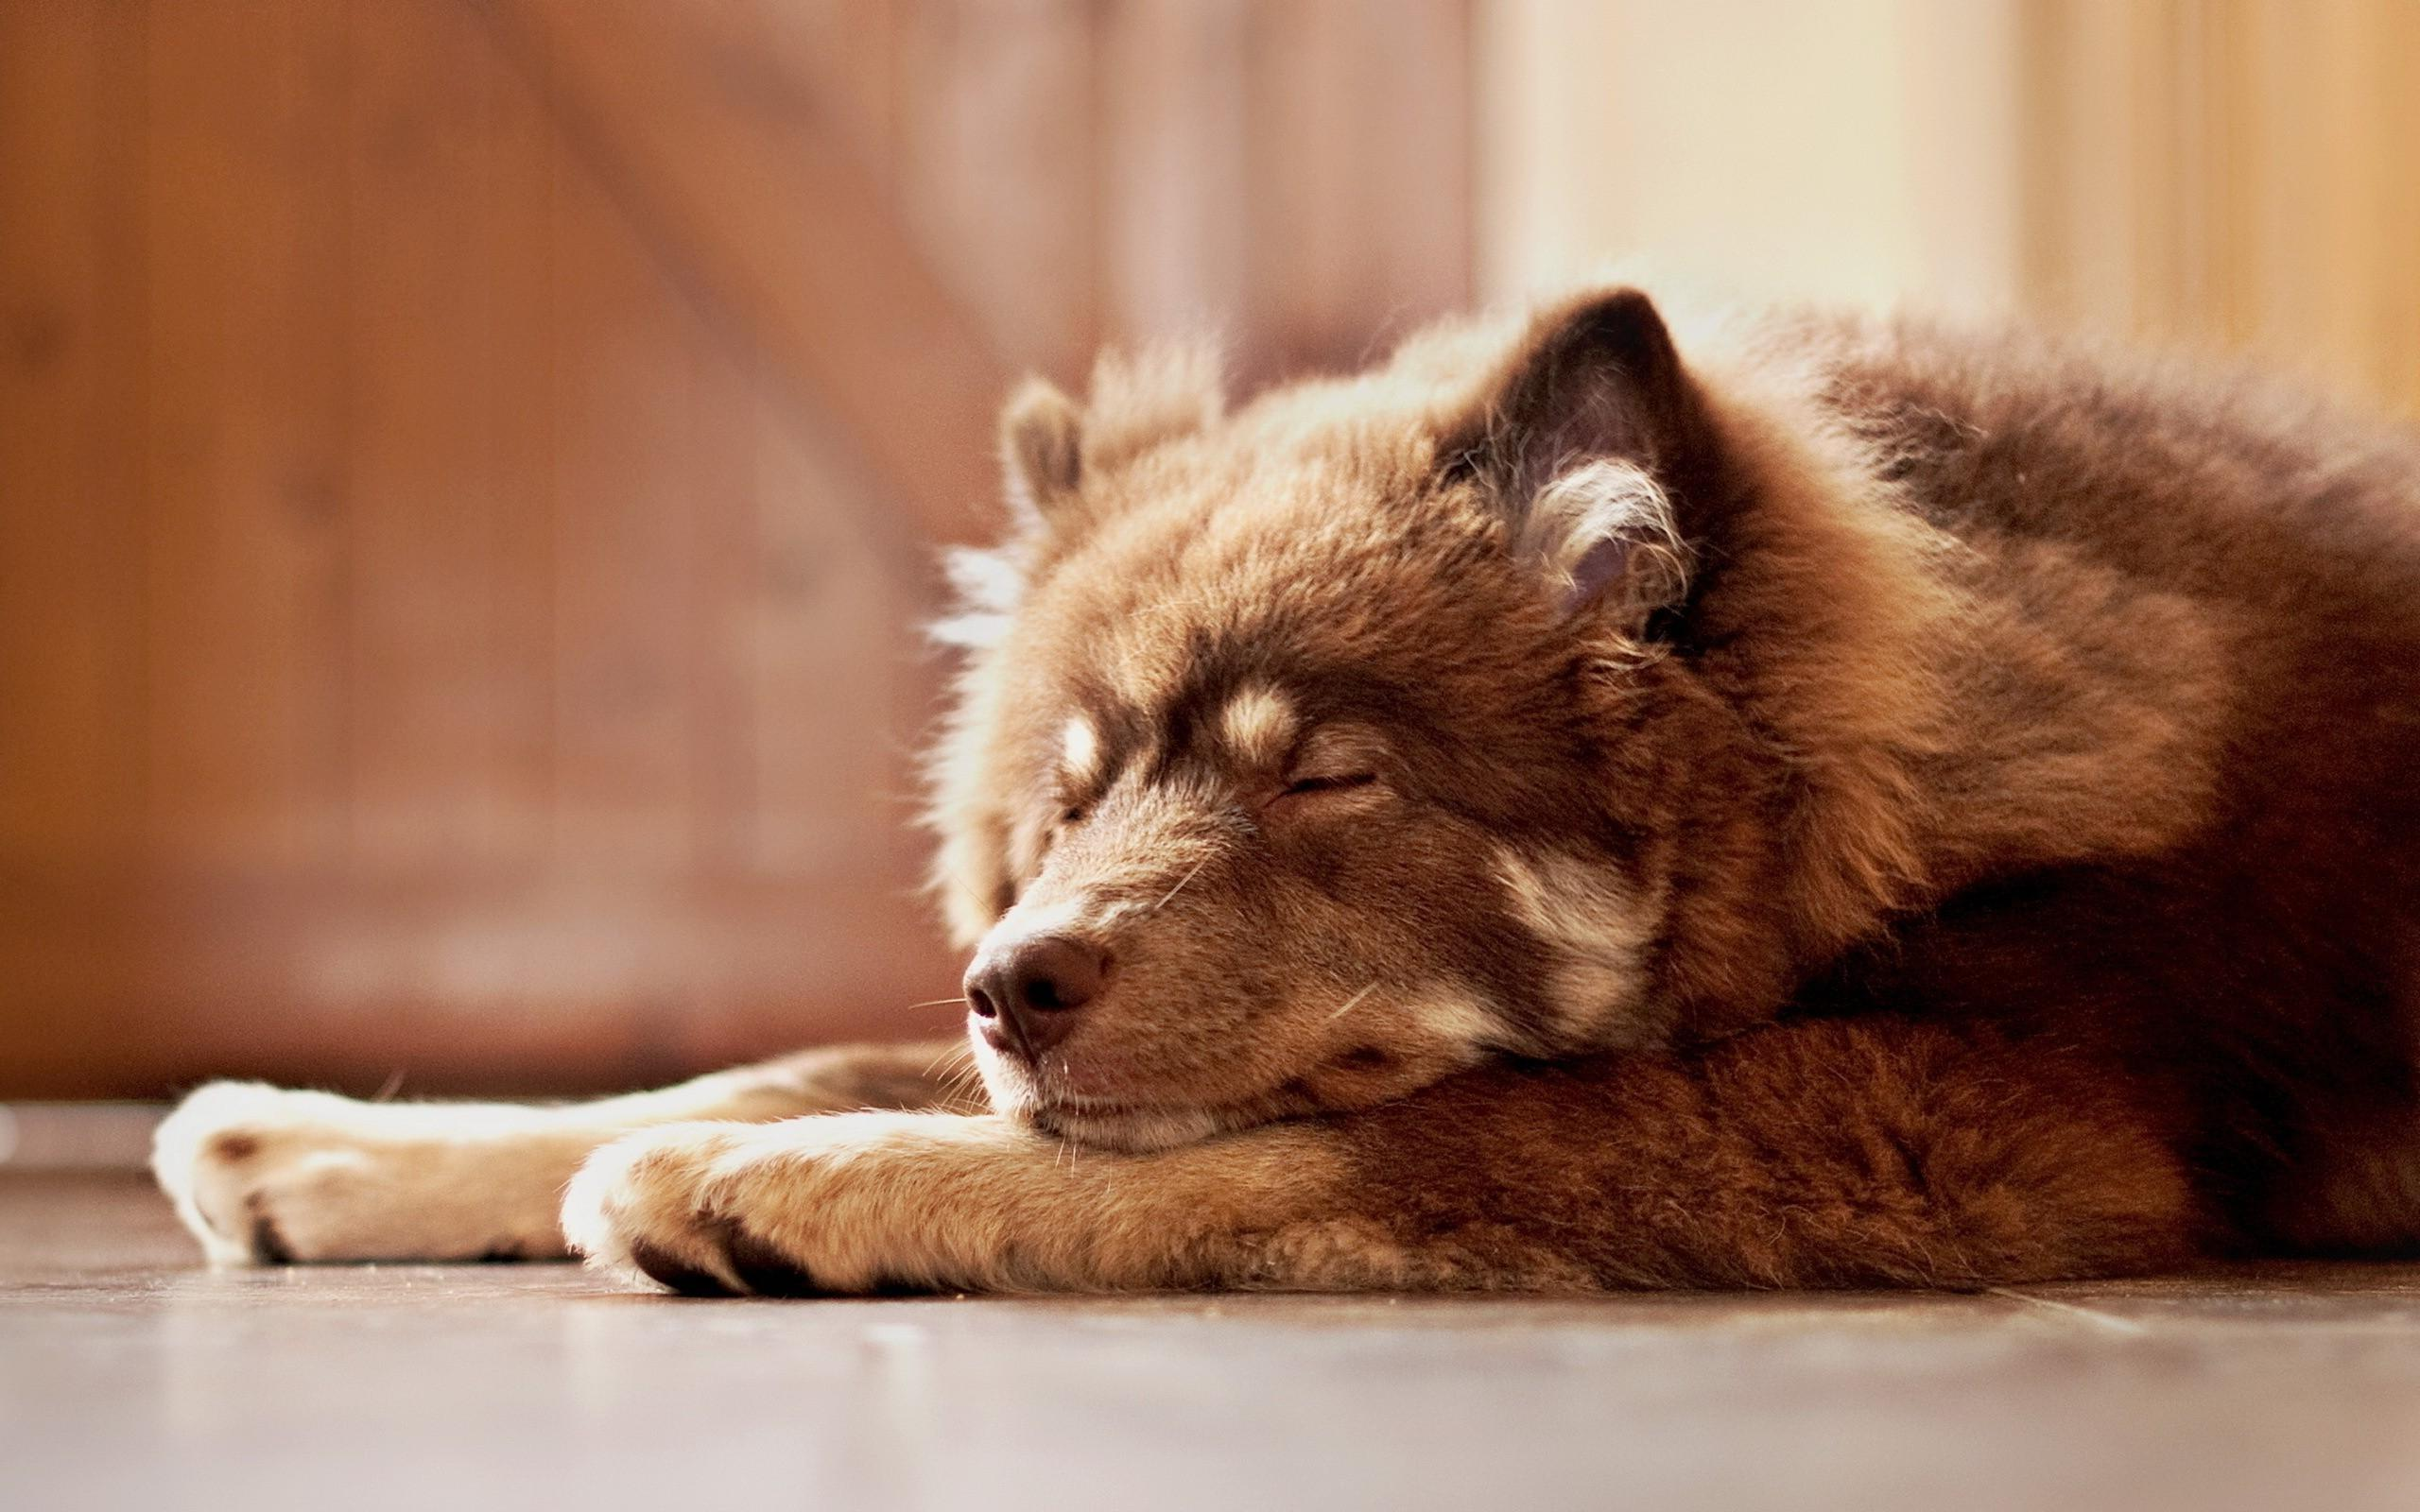 beautiful dog rest wallpaper 43874